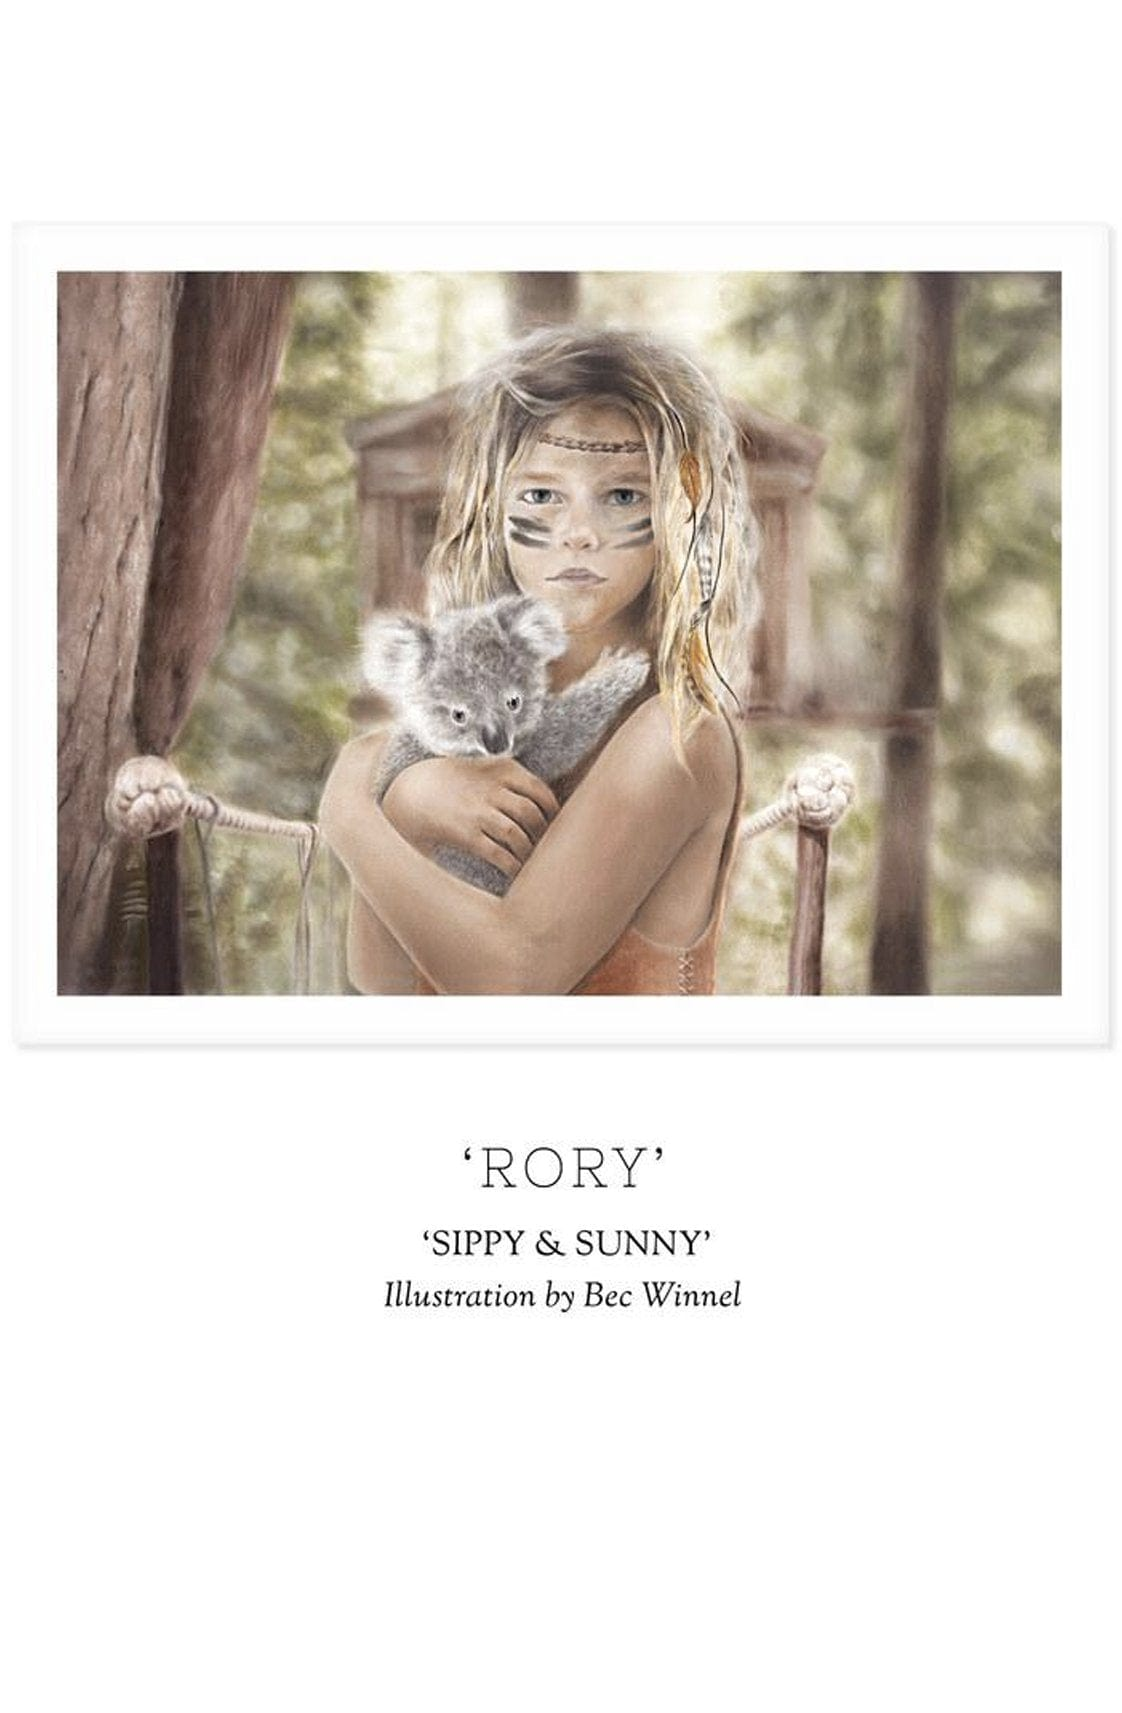 SIPPY & SUNNY - 'RORY' Print